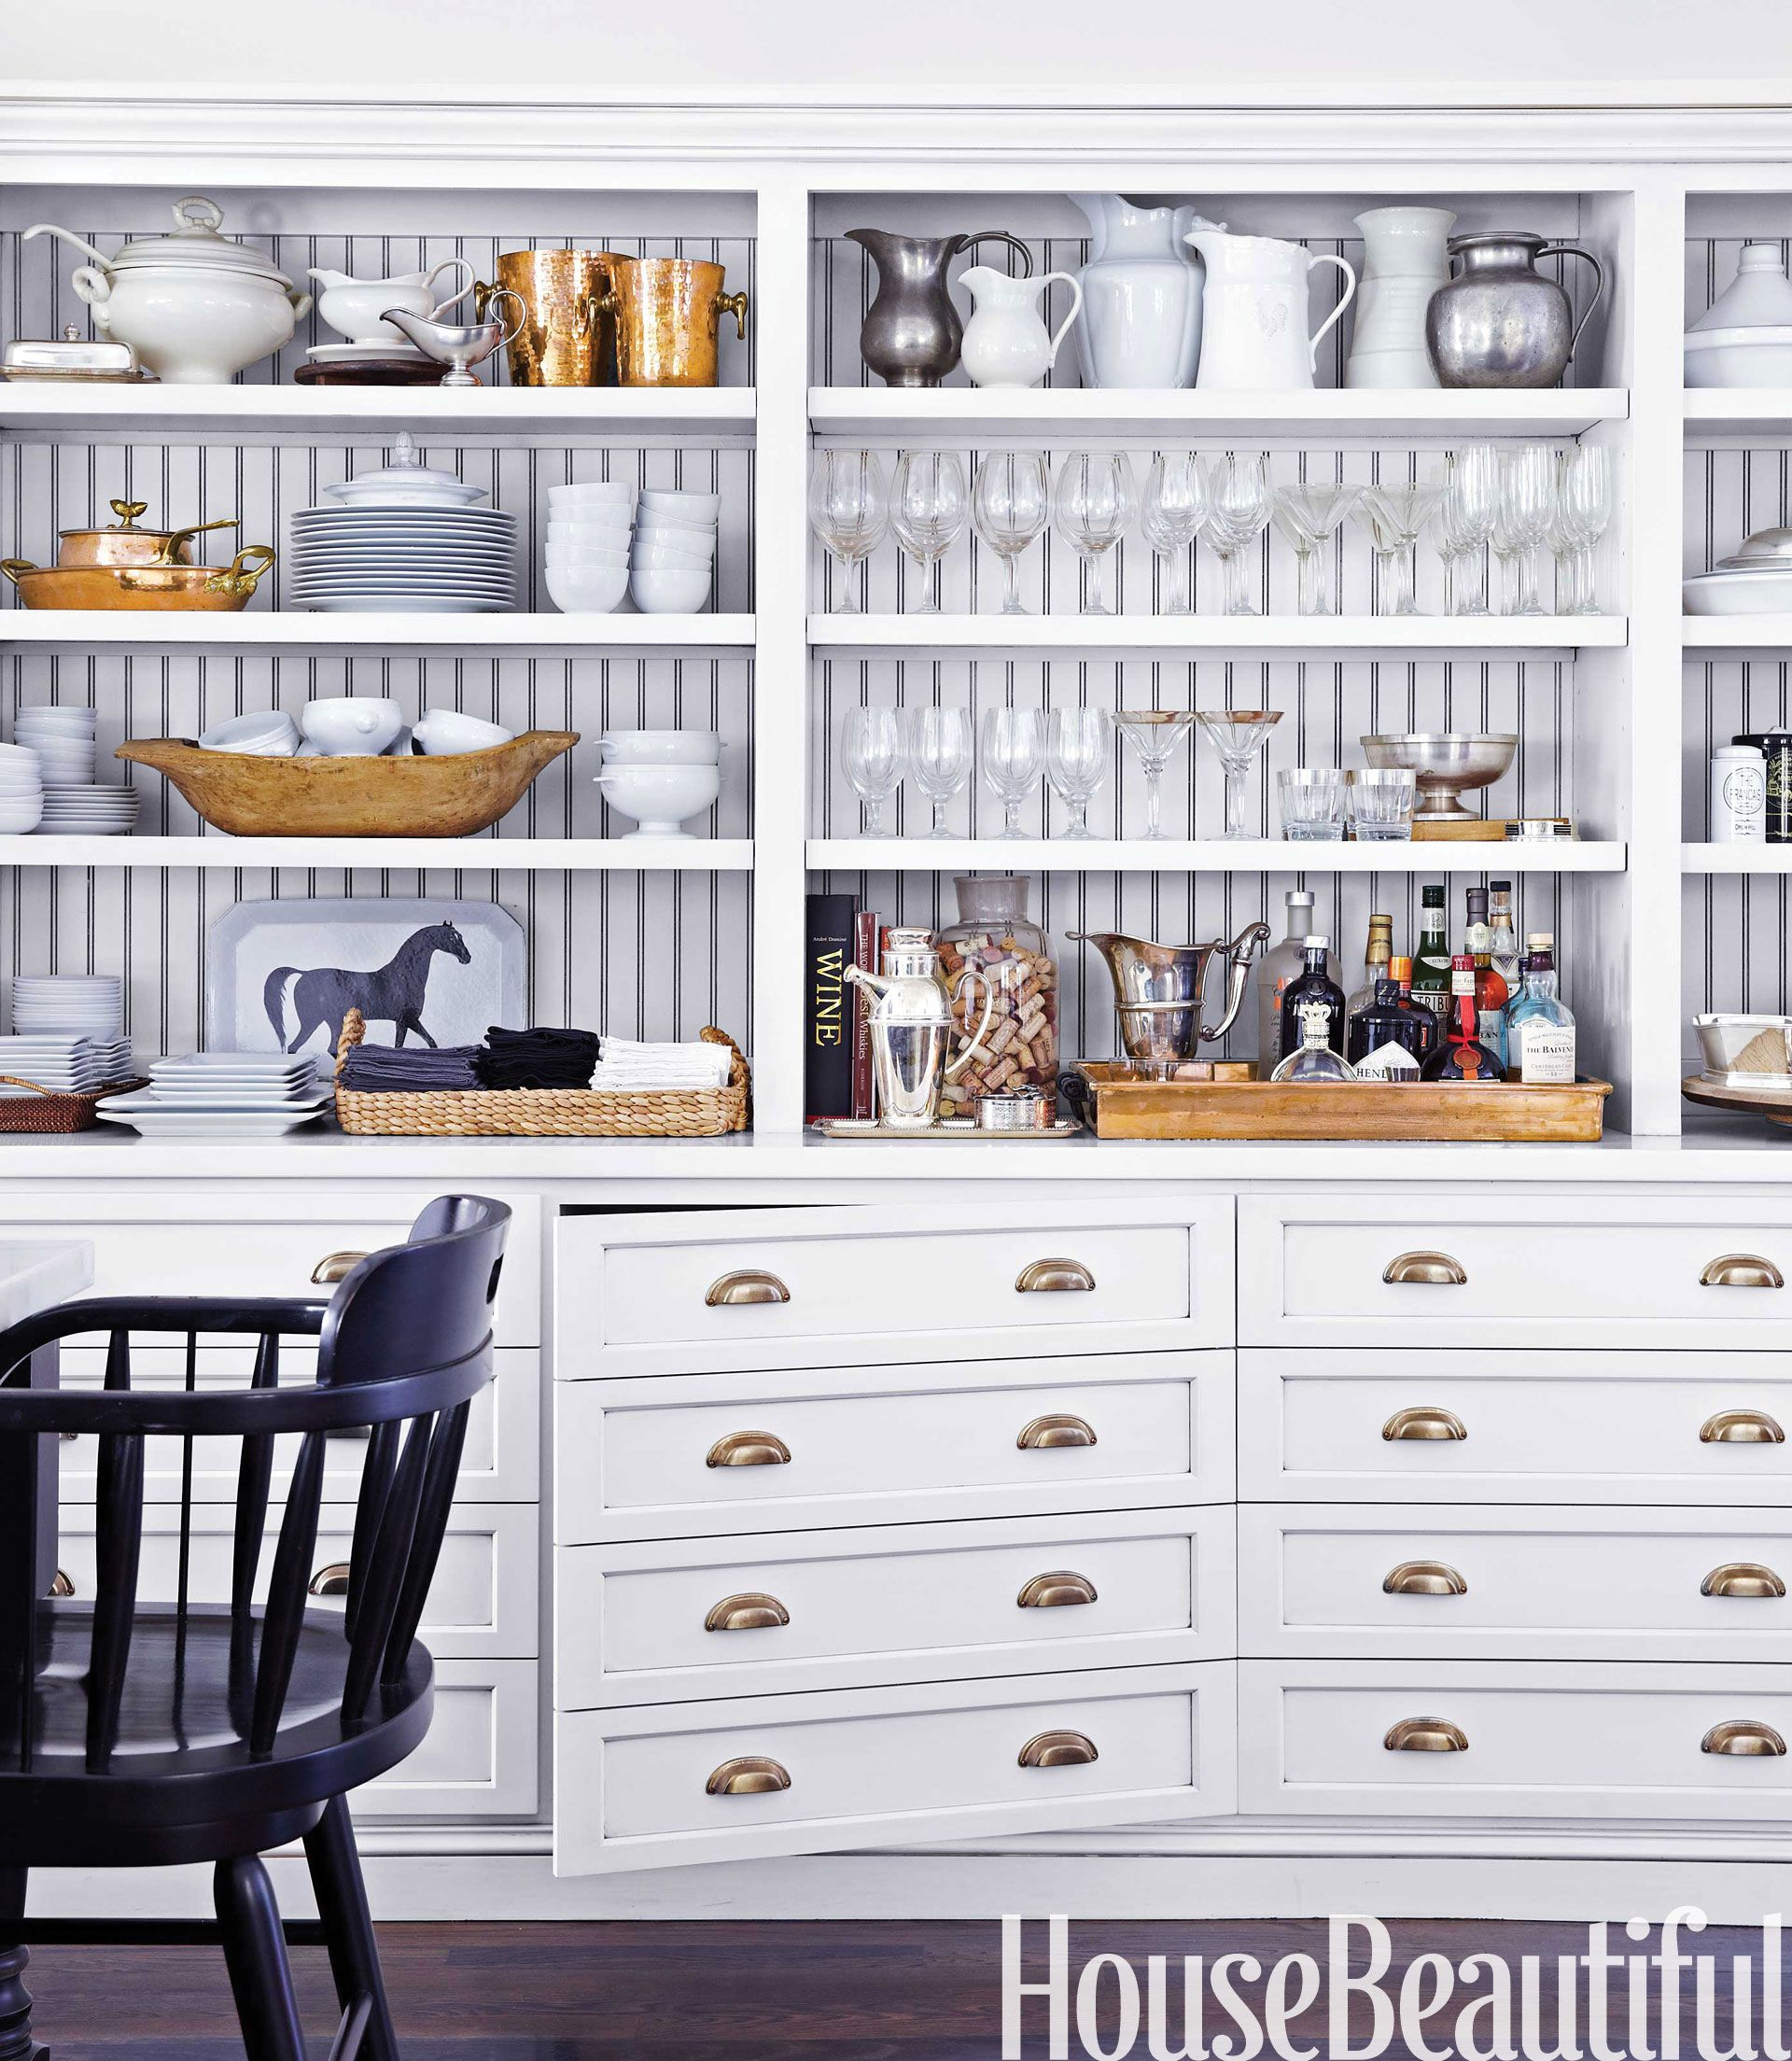 Kitchen Storage Ideas 24 Unique Kitchen Storage Ideas  Easy Storage Solutions For Kitchens